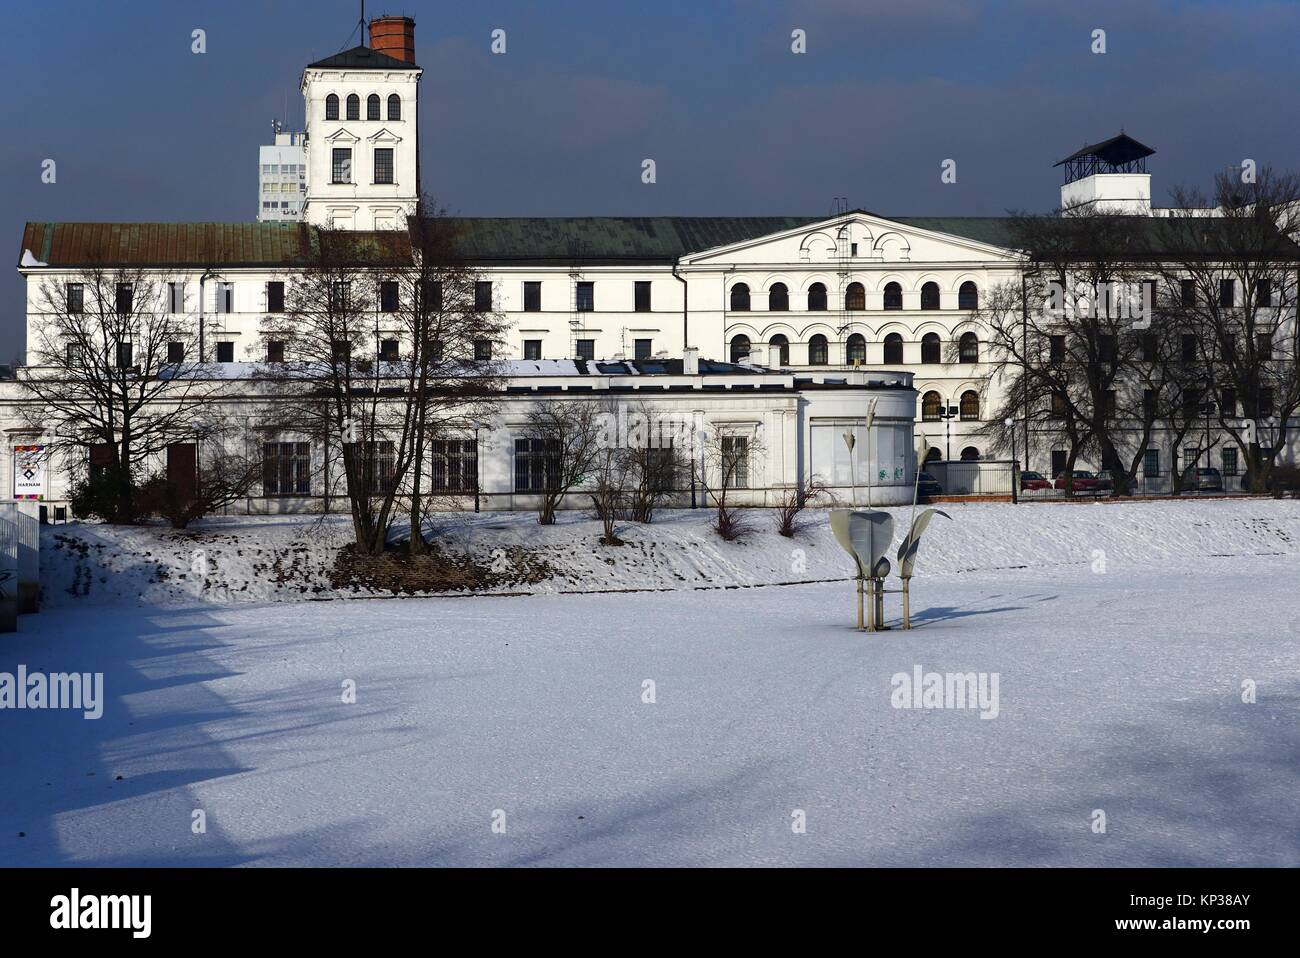 Winter urban landscape of Lodz, White Factory - Biala Fabryka, constructed in years 1835-1839 to host textile factory - Stock Image